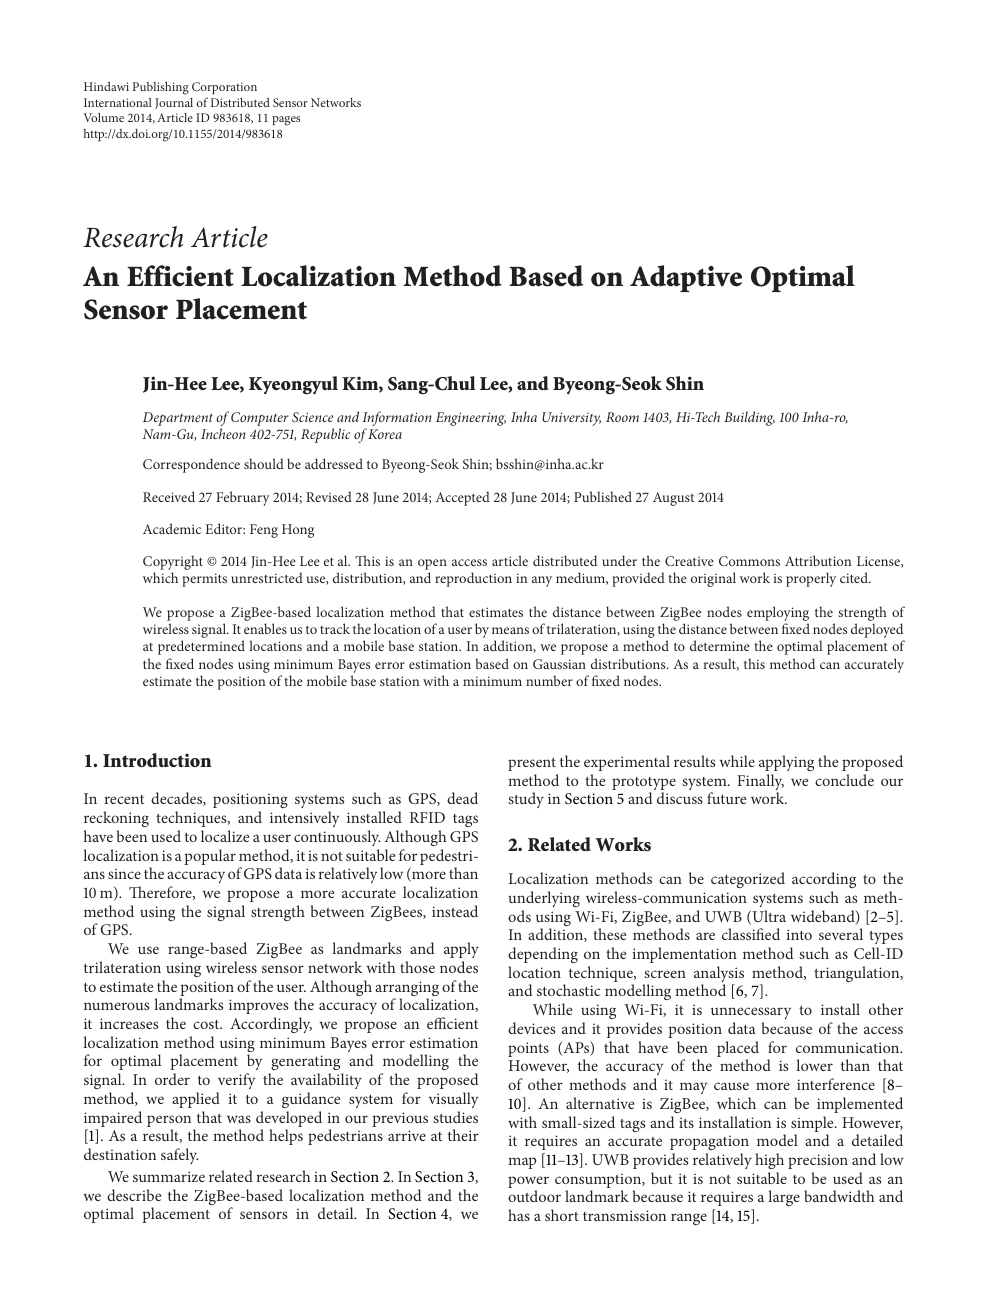 An Efficient Localization Method Based on Adaptive Optimal